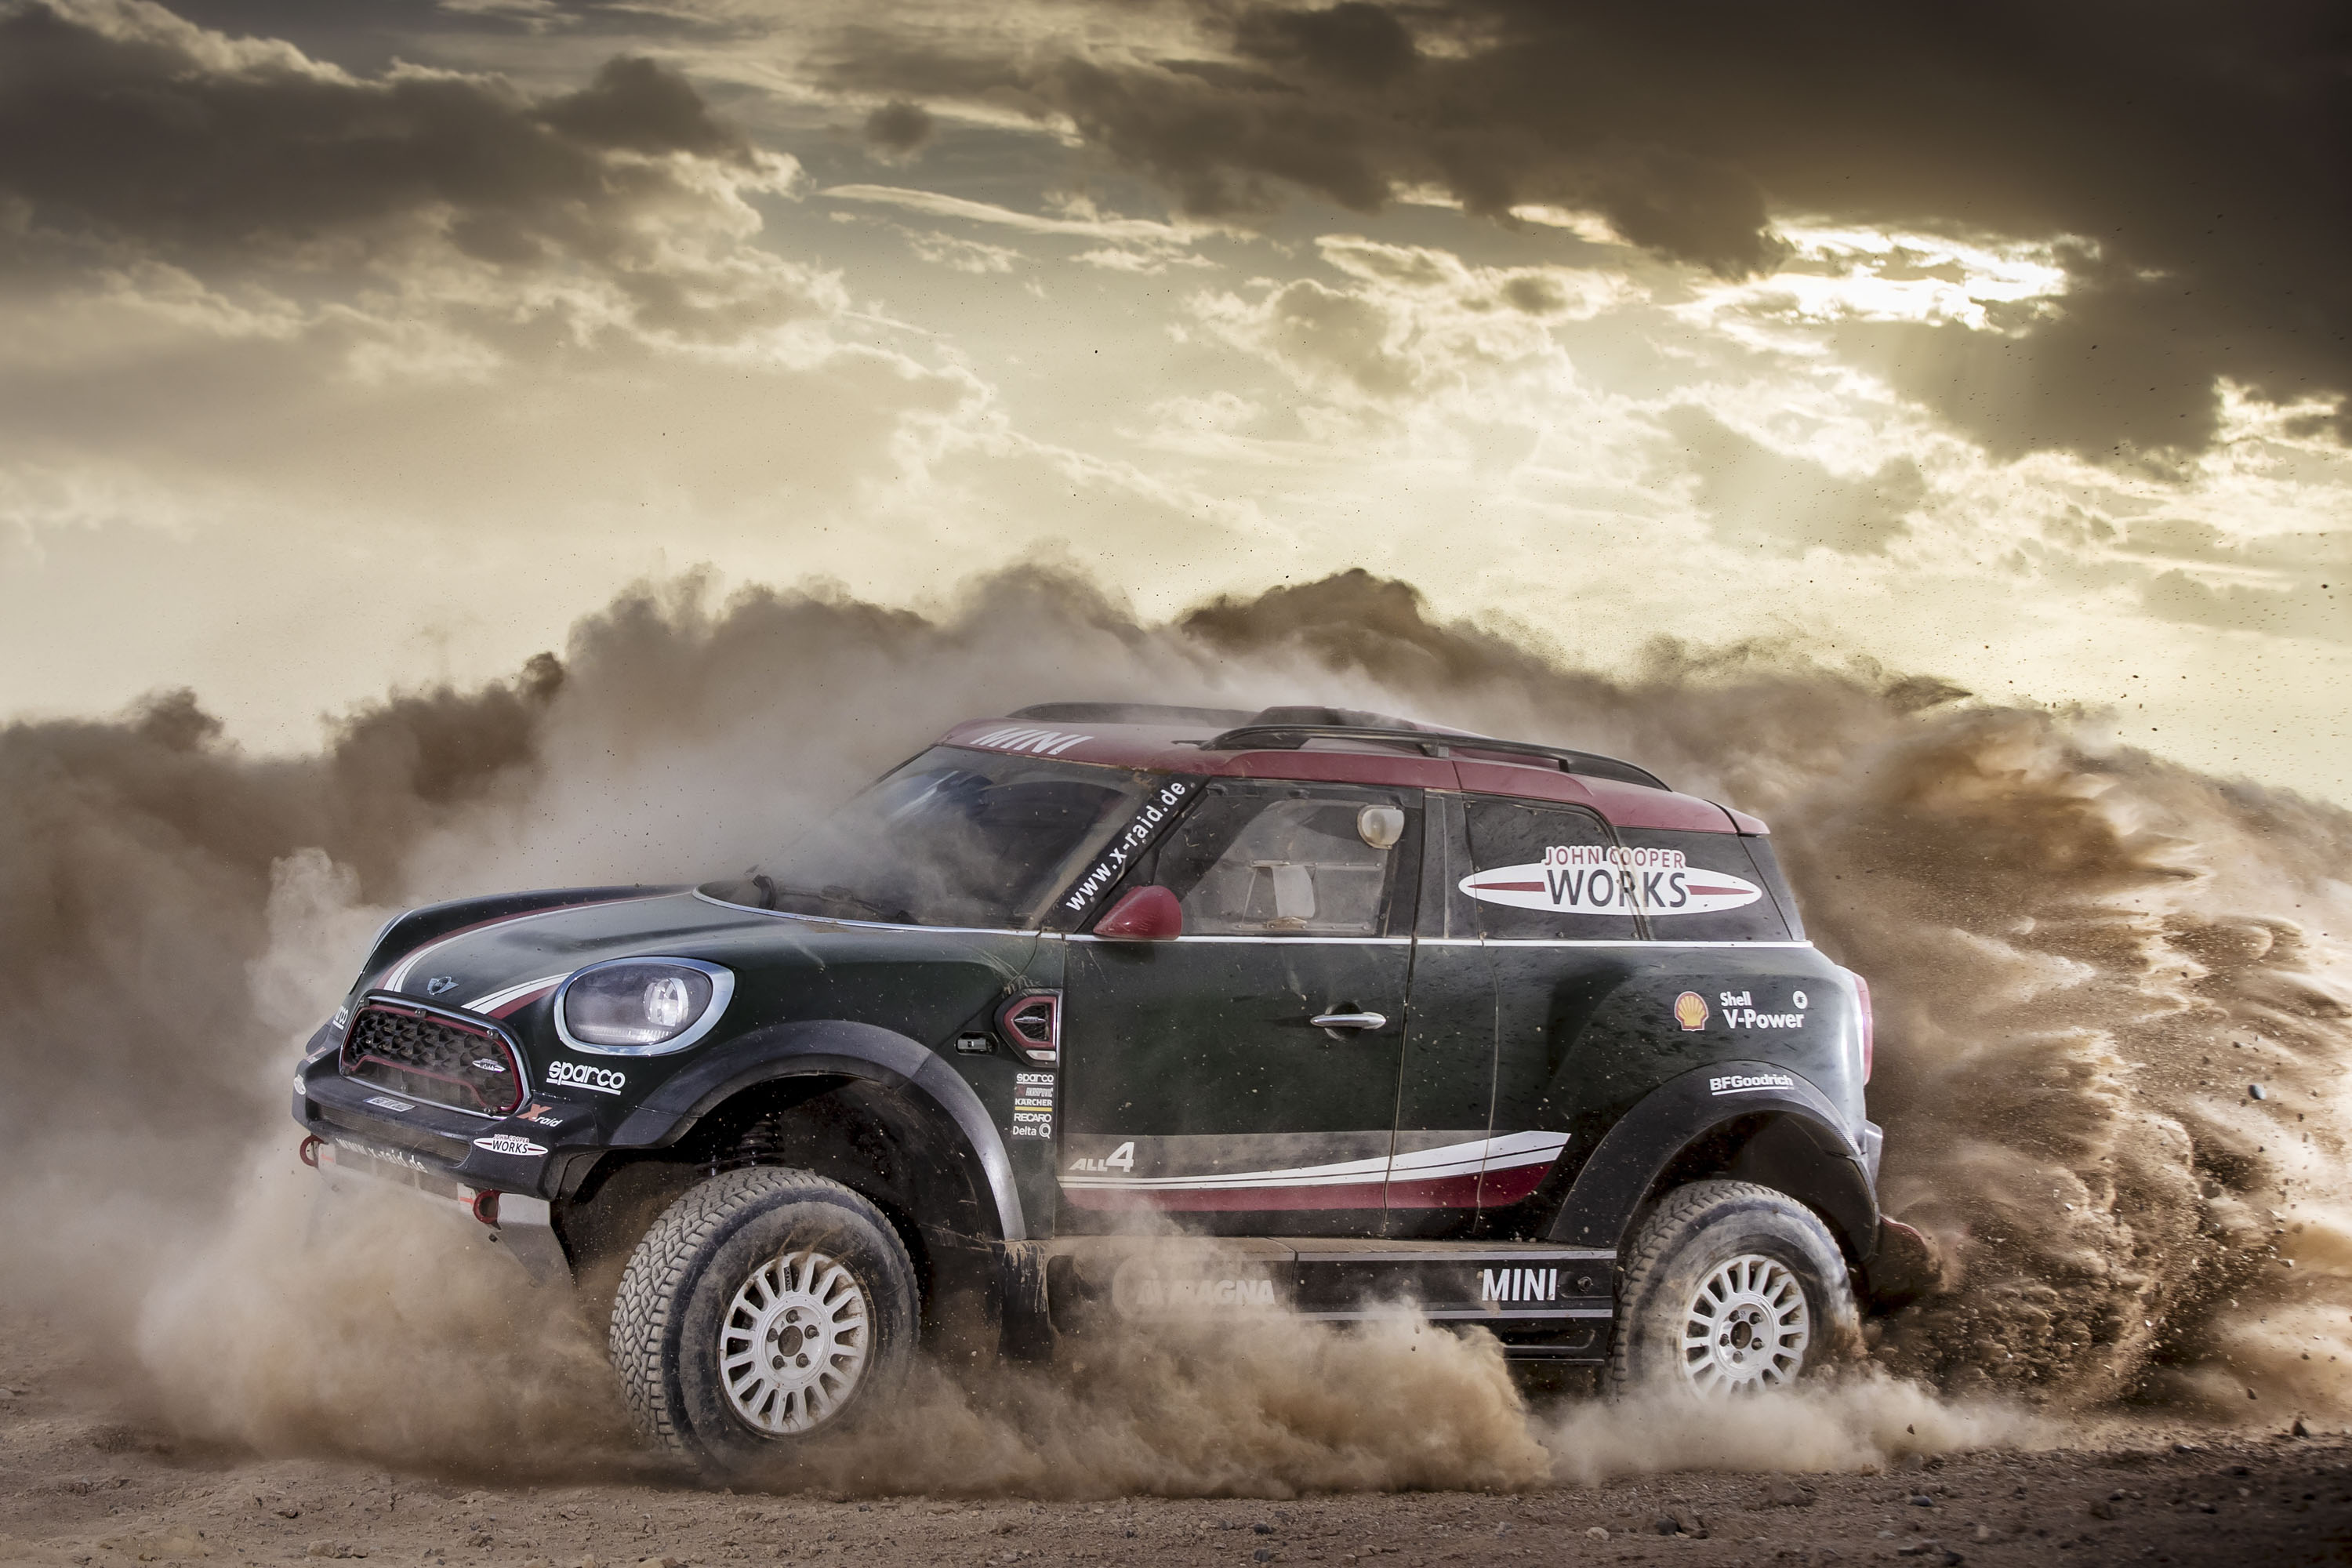 2018 Mini John Cooper Works Rally And Buggy Review - Top Speed